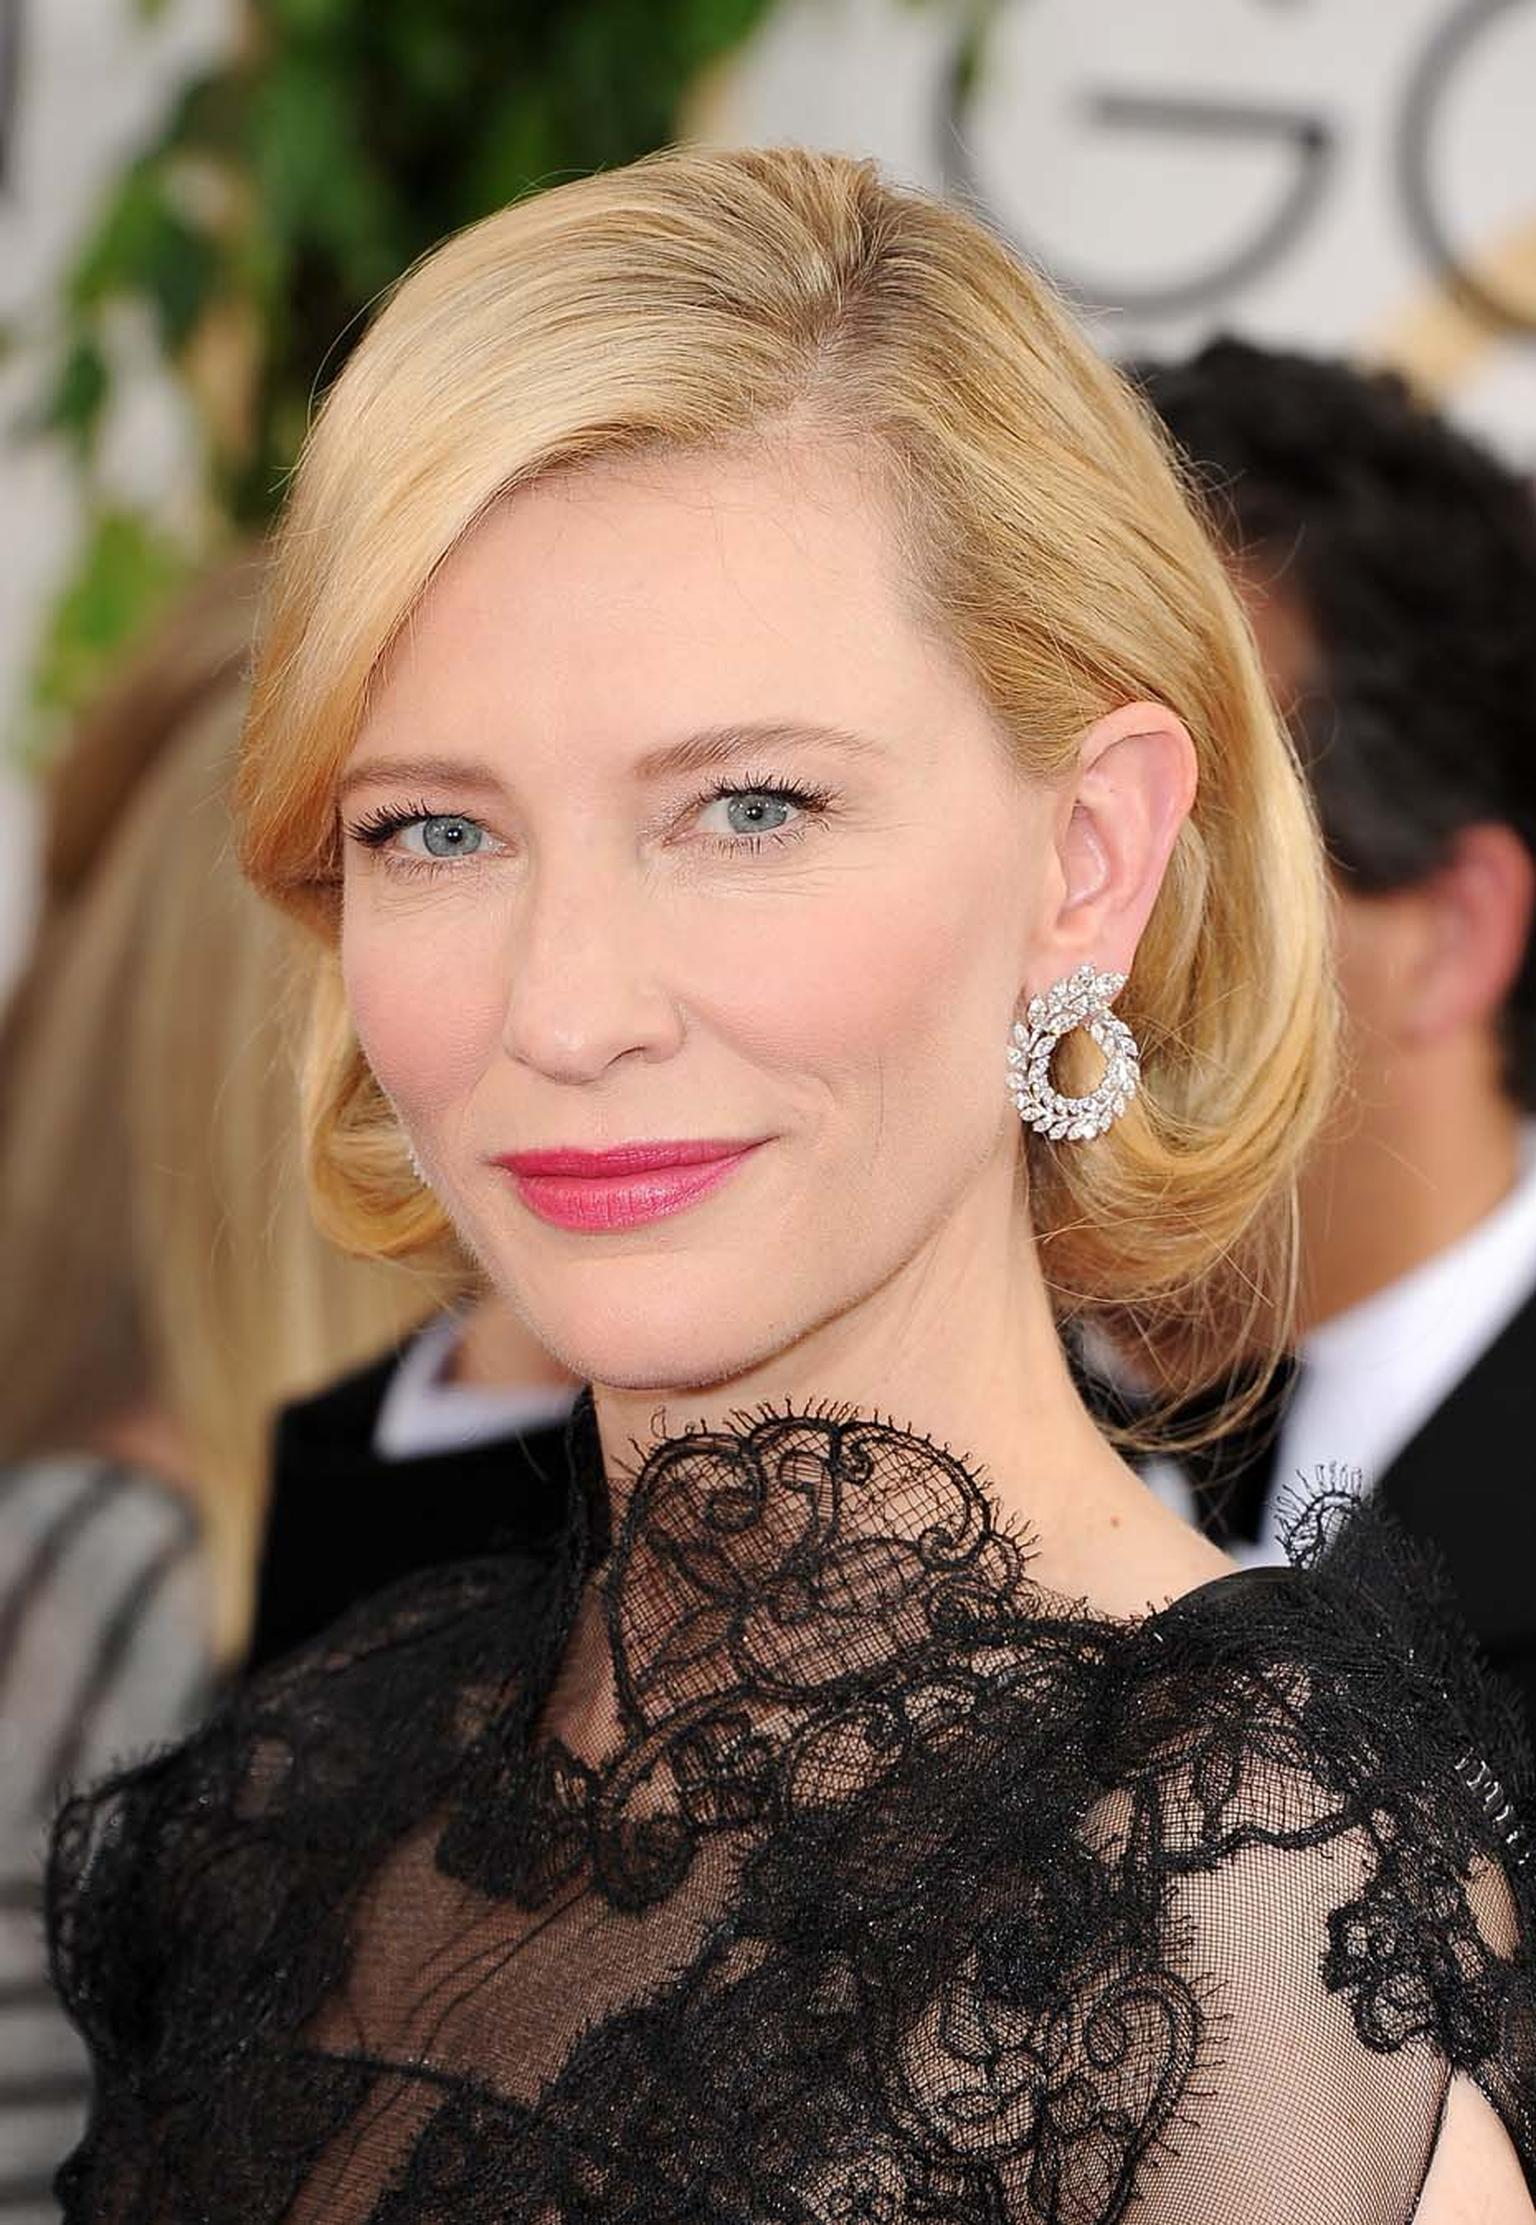 Cate Blanchett previewed a pair of Green Carpet Collection earrings by Chopard at the Golden Globes 2014 - the fruit of a collaboration with Livia Firth's Eco-Age